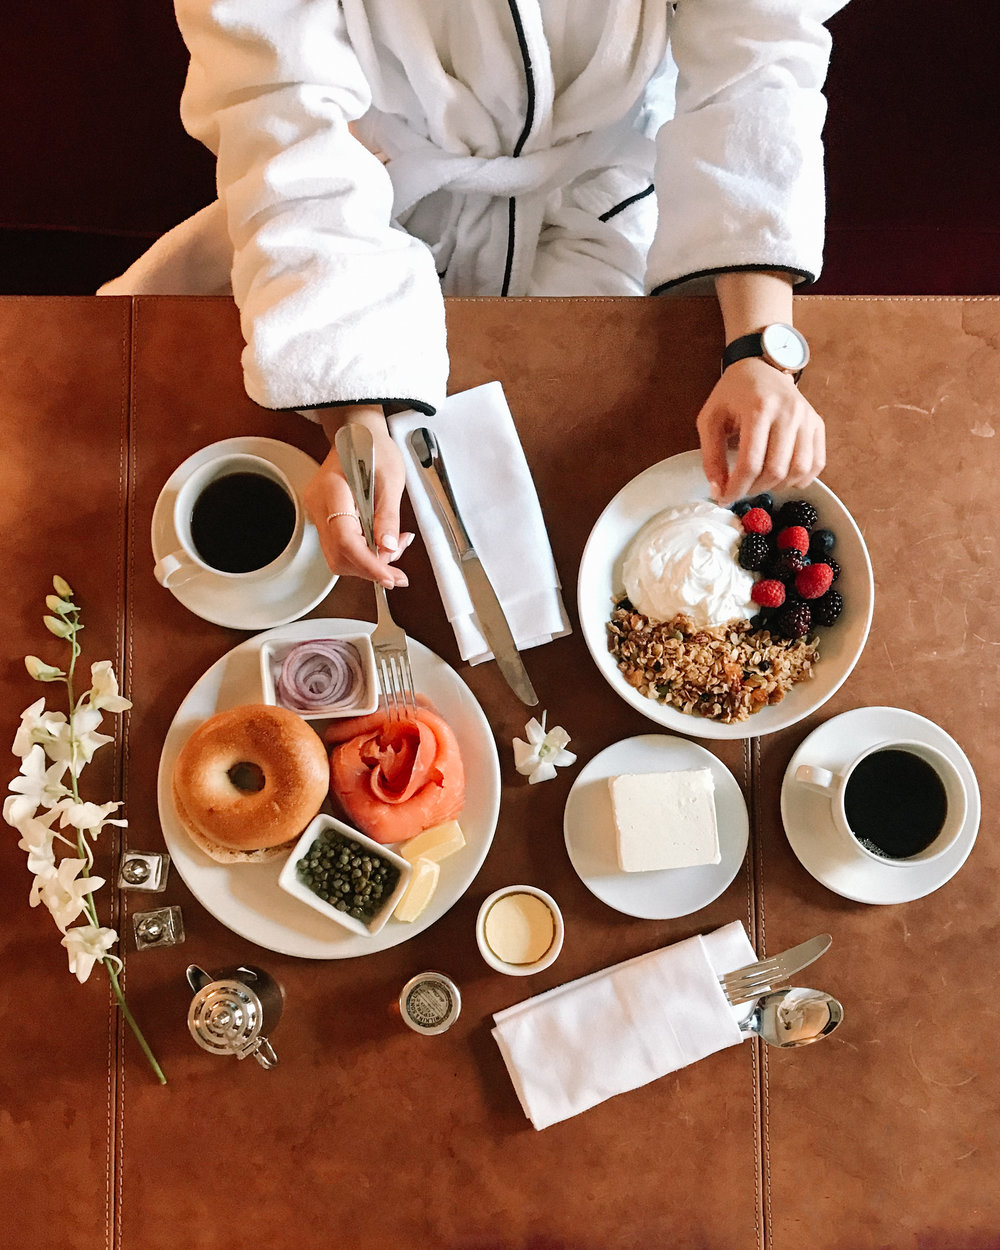 Hotel breakfast on a brown table by a social media photographer